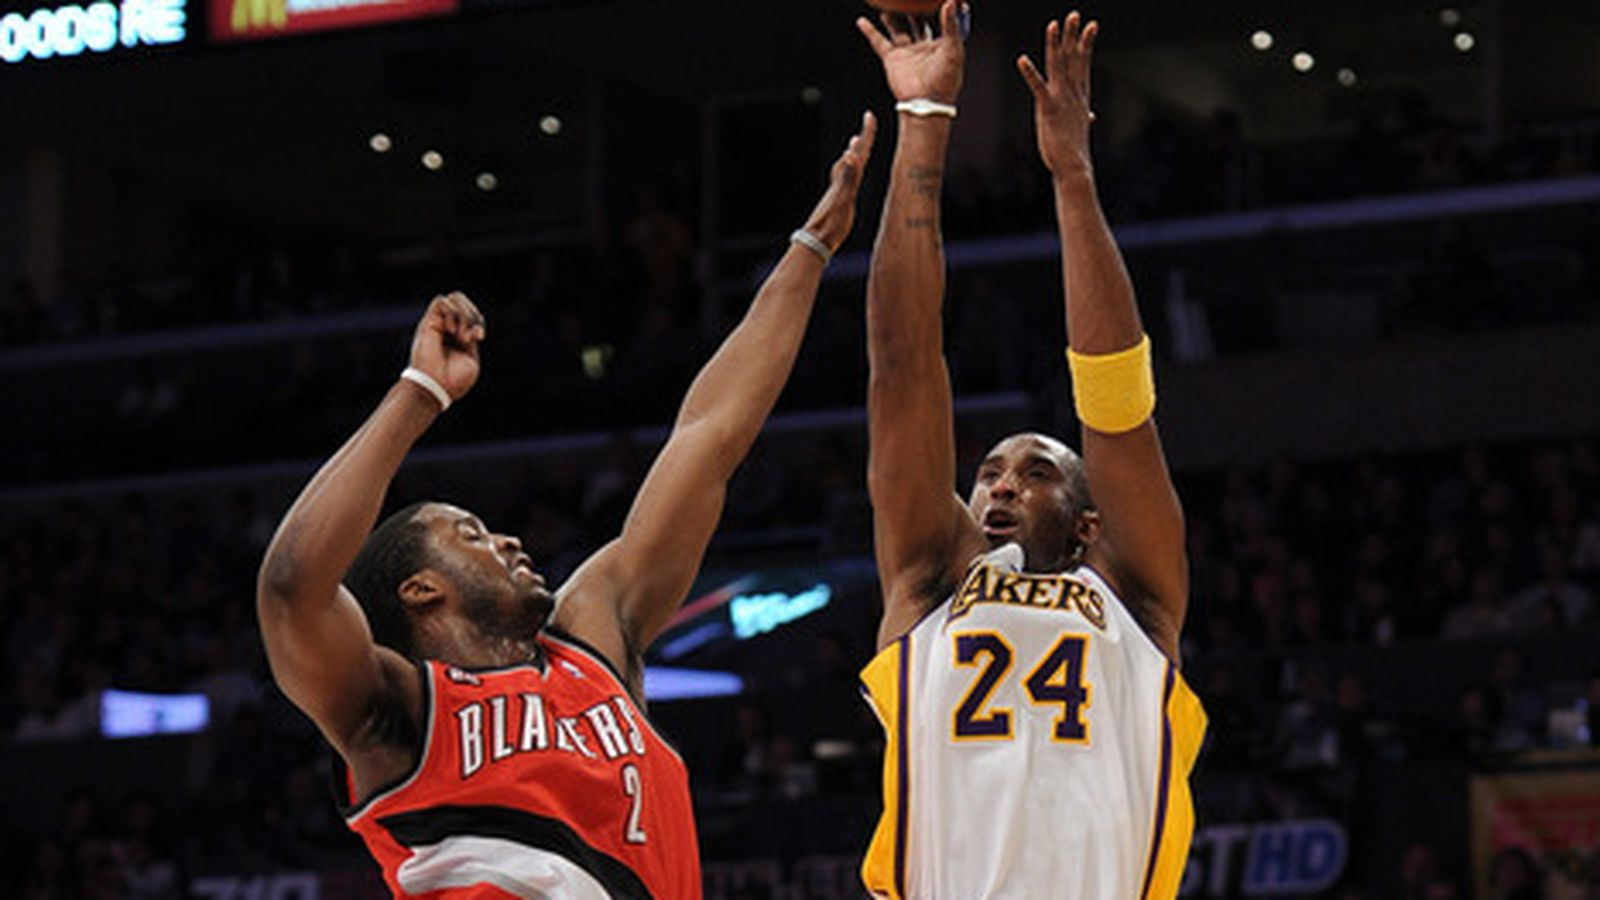 Blazers-Lakers Pre-Season Game 1: 5 Things to Watch